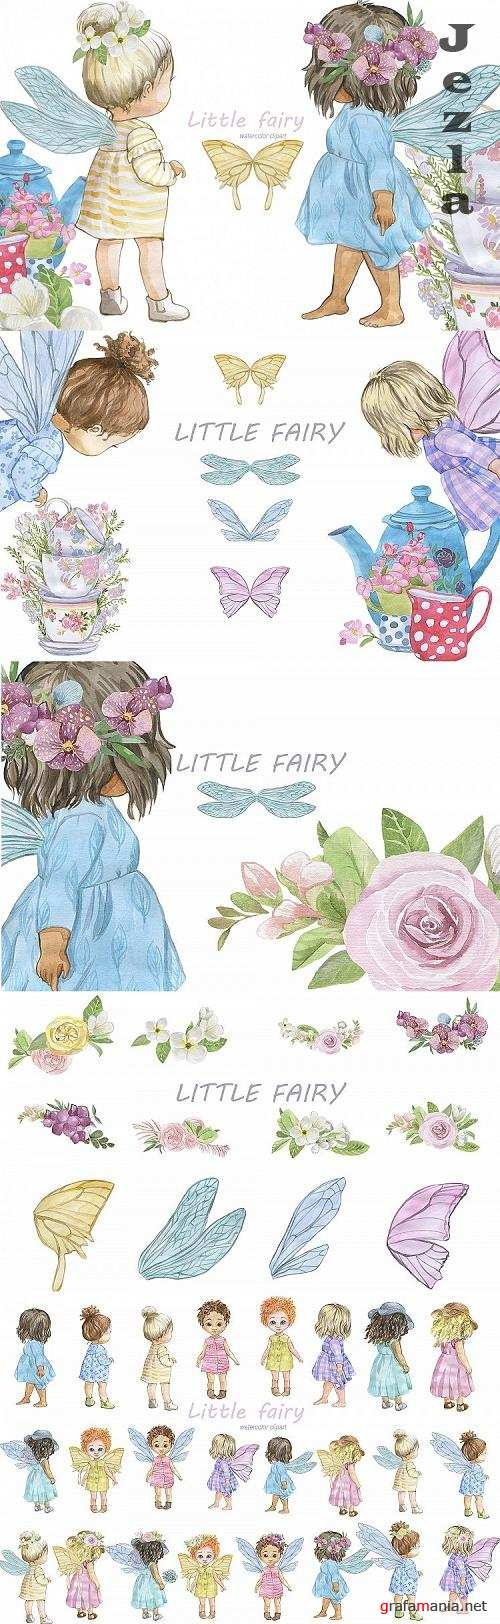 Little Fairies - 522937